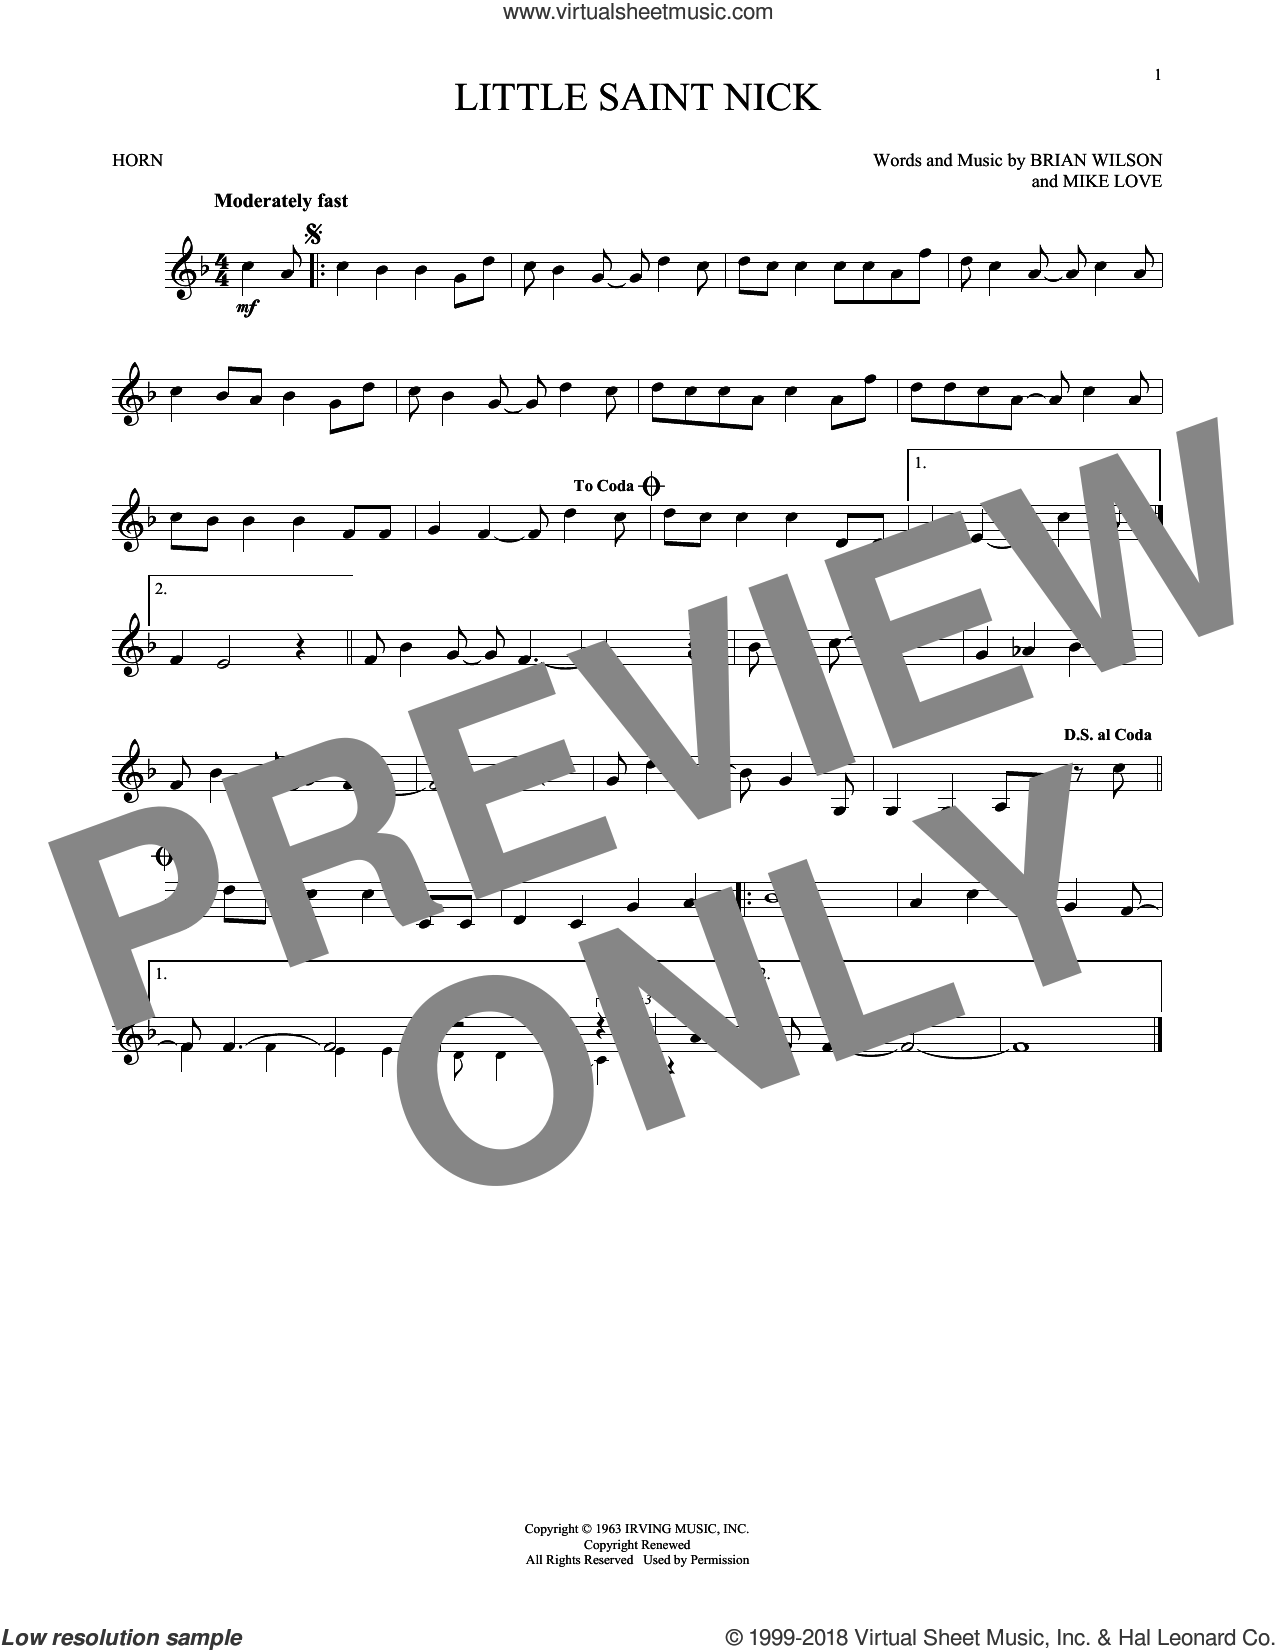 Little Saint Nick sheet music for horn solo by The Beach Boys, Brian Wilson and Mike Love, intermediate skill level